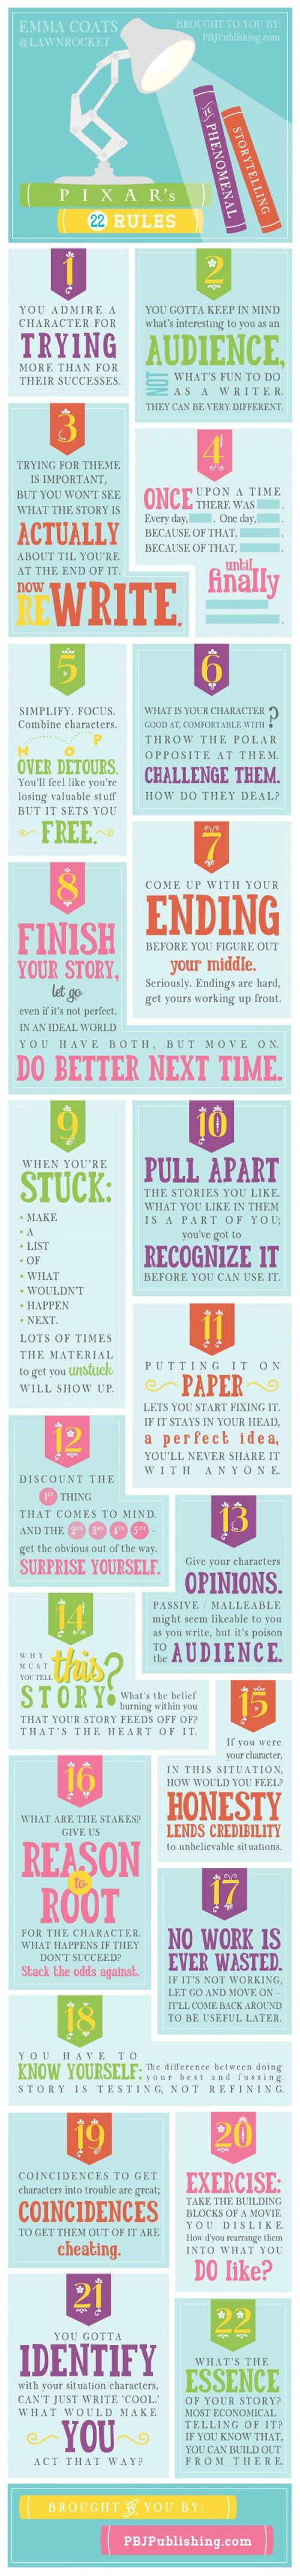 66 best Storytelling images on Pinterest | Business storytelling ...